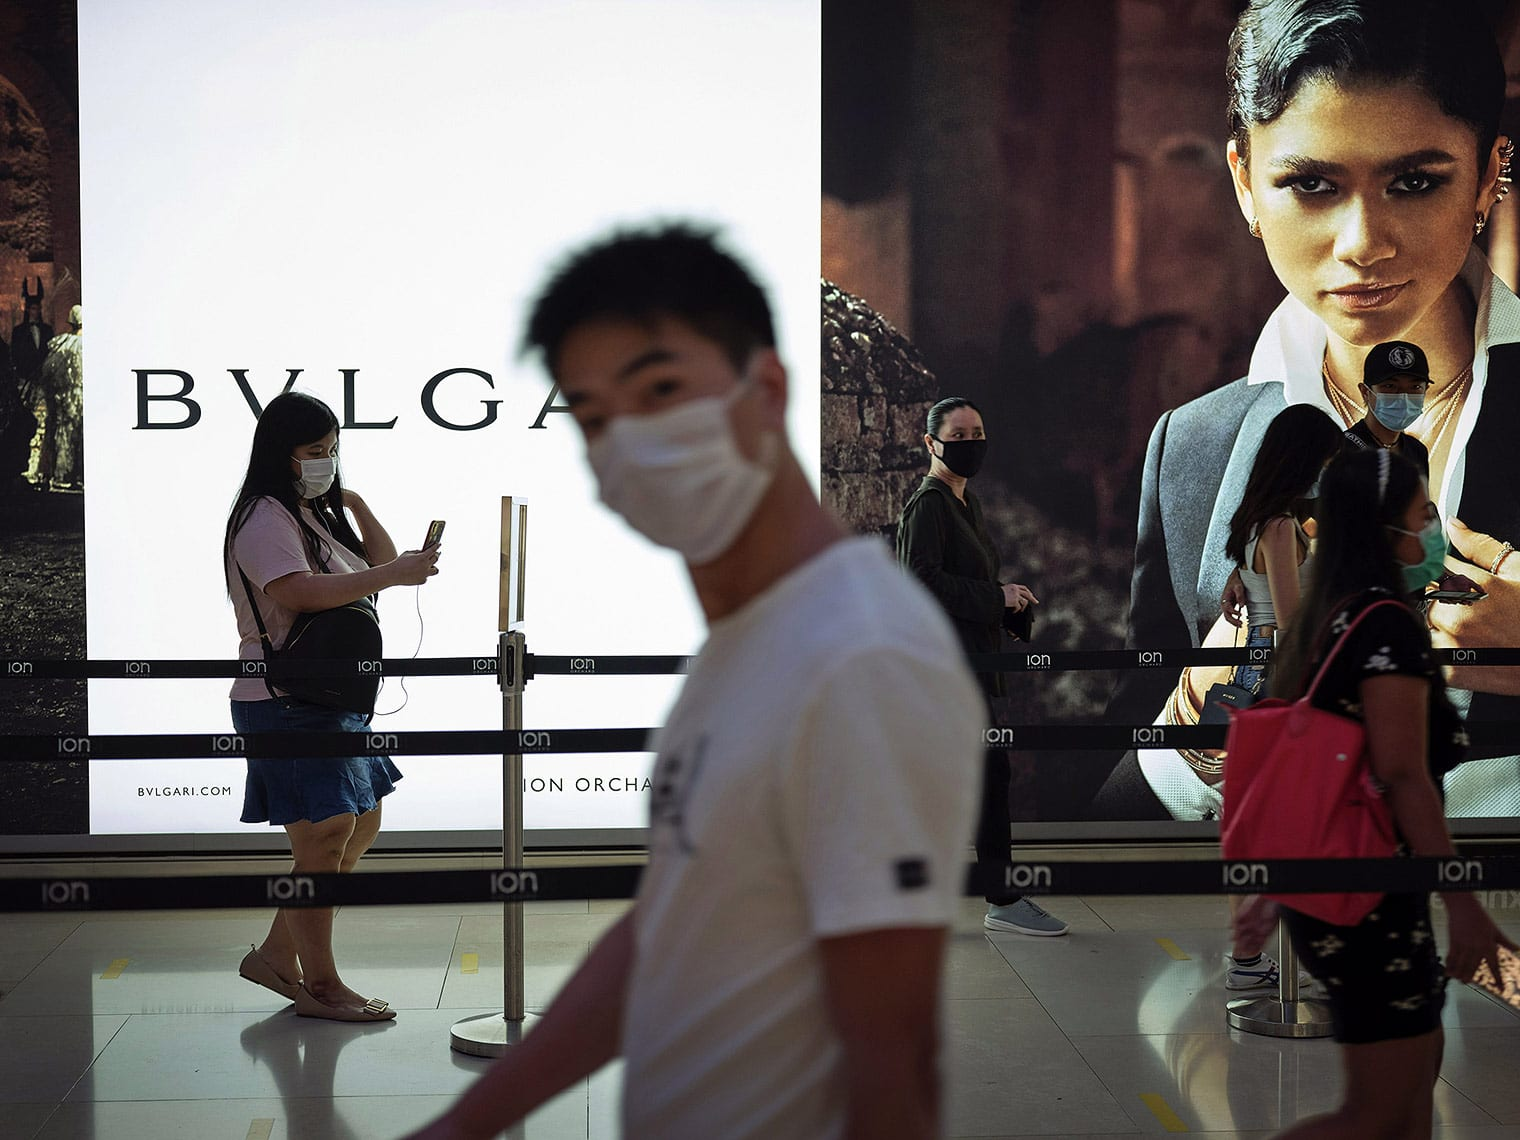 A masked man in the foreground looks at the camera, while shoppers behind him walk in front of backlit ad displays